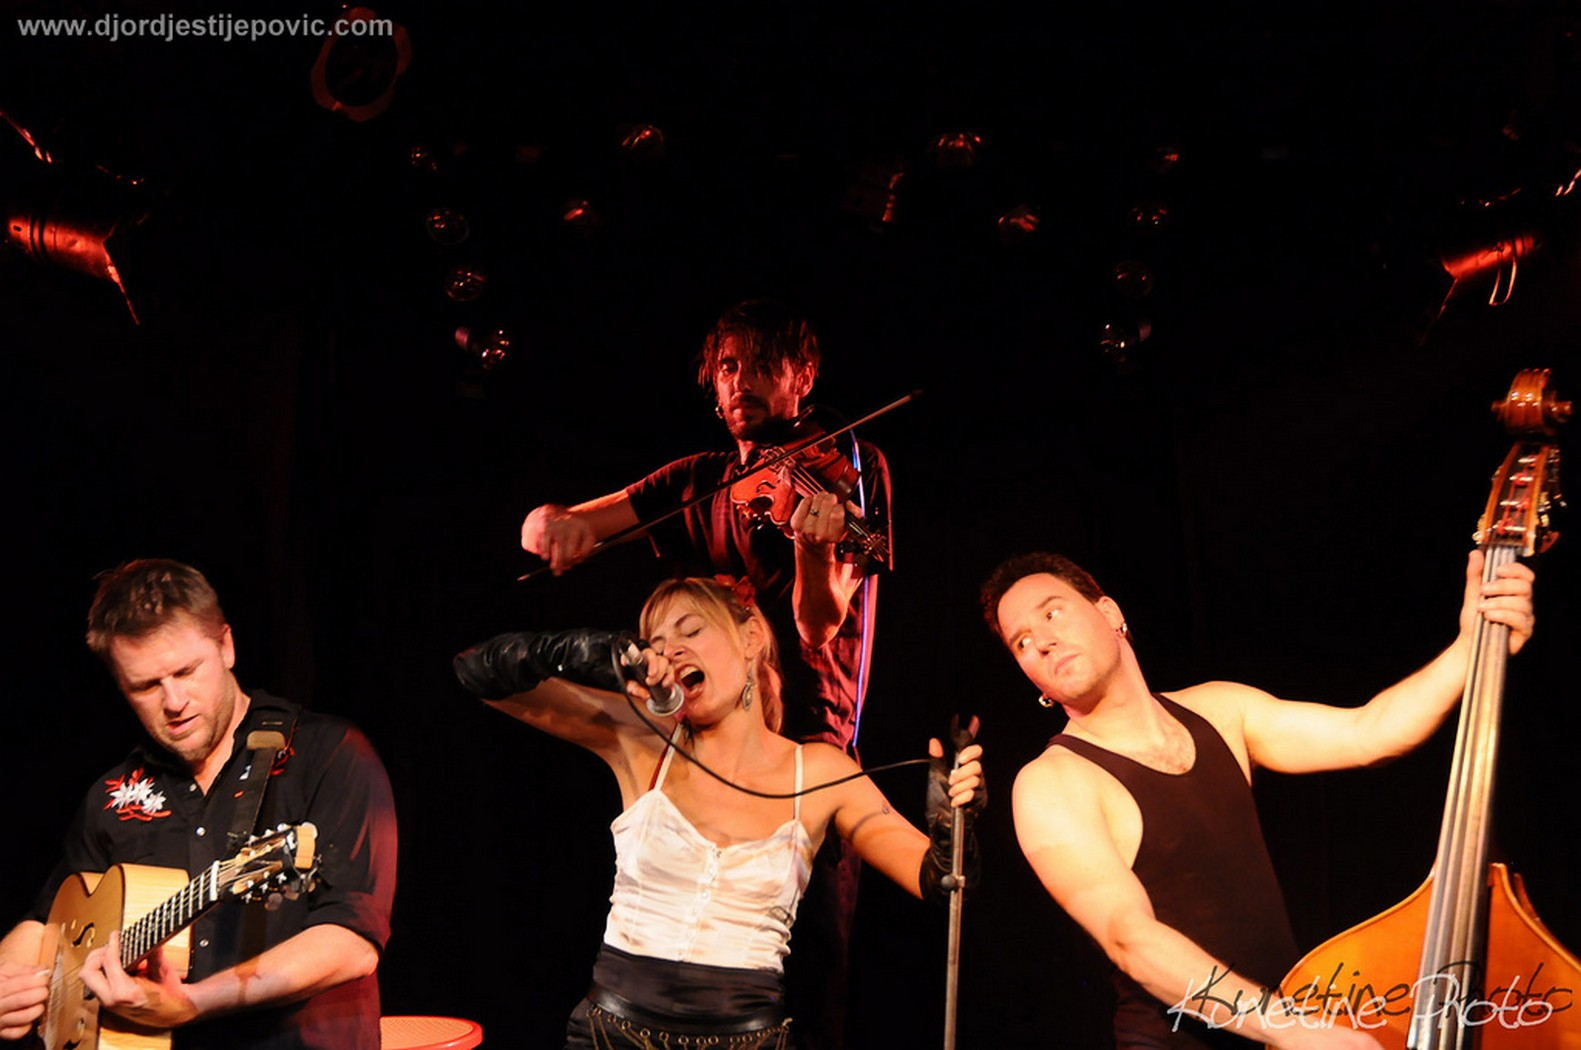 Fish tank ensemble - Full Size Is 1581 1050 Pixels